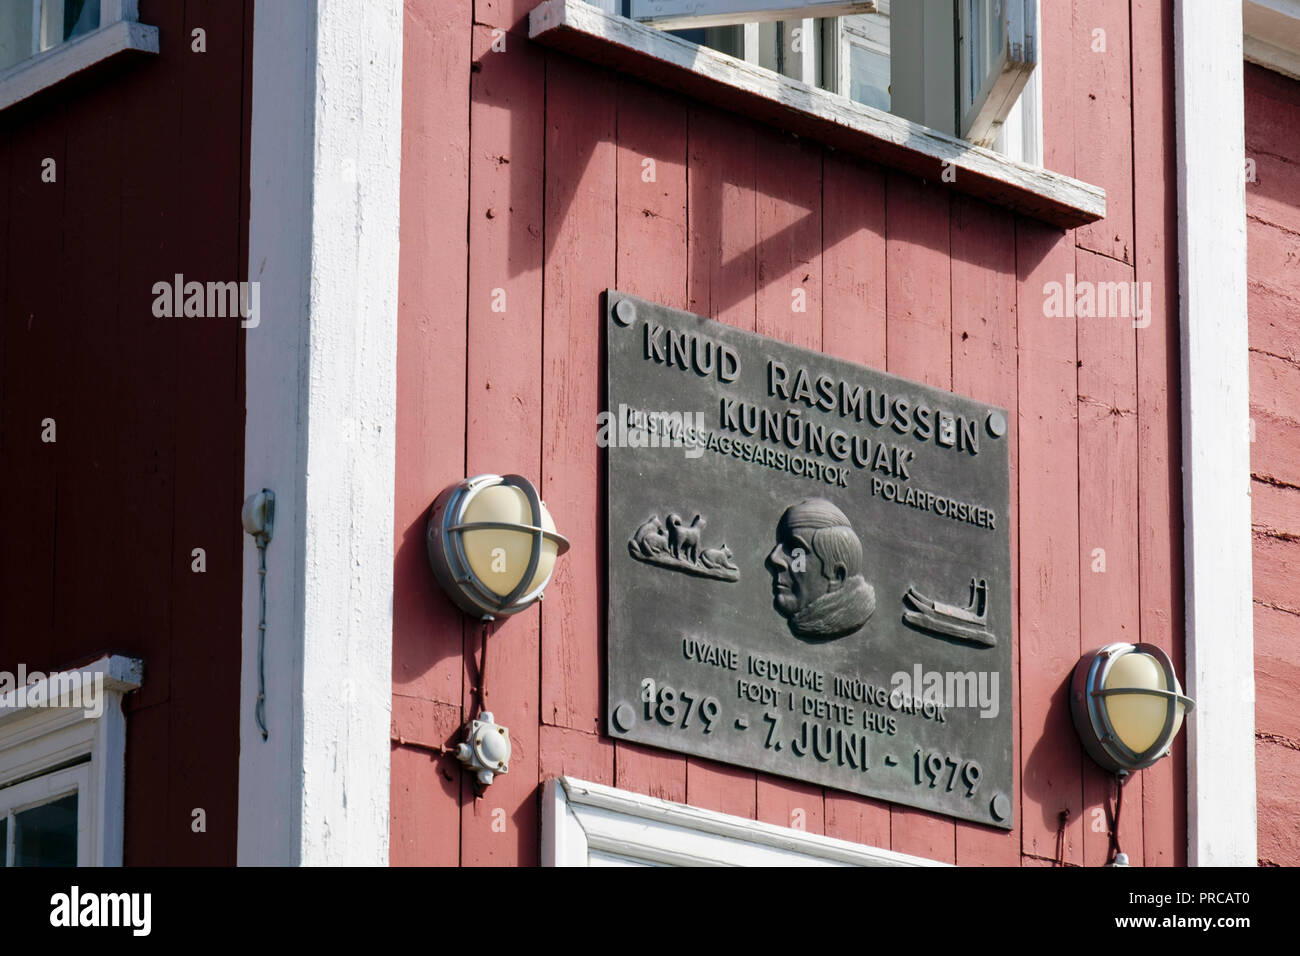 Plaque on Knud Rasmussen's 1879 - 1979 (polar explorer and anthropologist) birthplace. Ilulissat (Jakobshavn), Qaasuitsup, Greenland - Stock Image